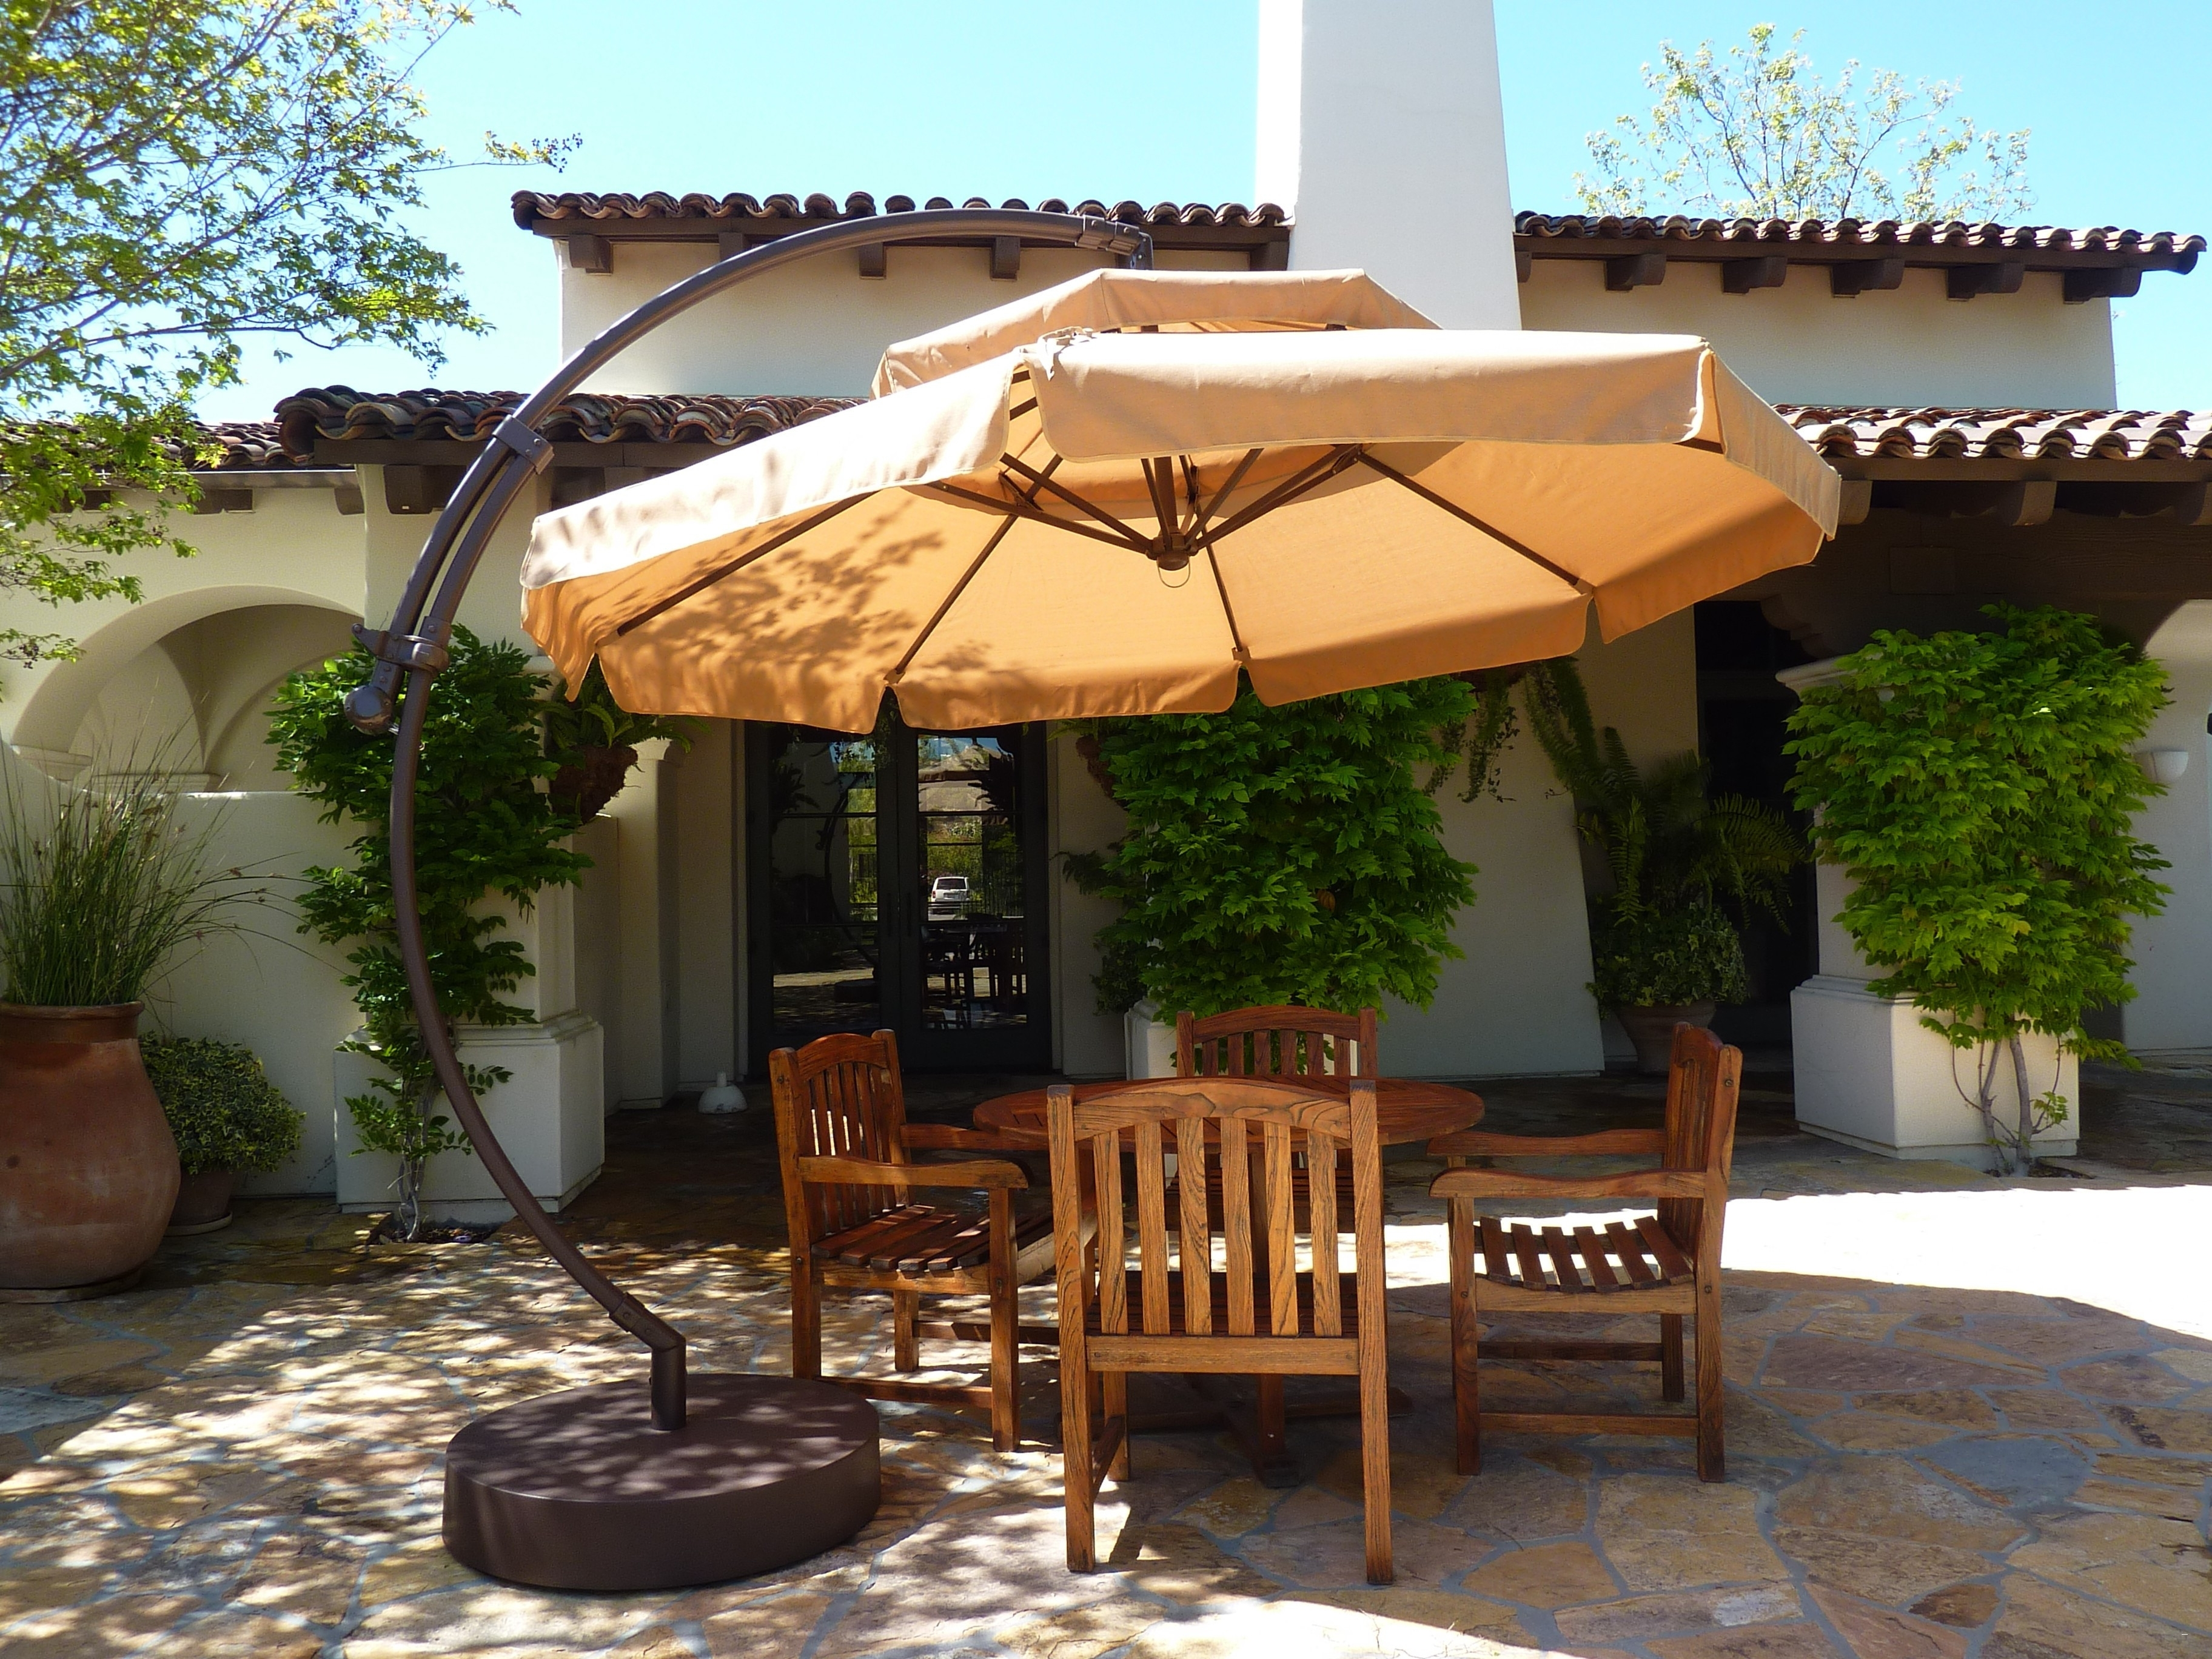 Famous Costco Patio Umbrella – Inspirational Patio Covers Costco Fresh Free Within Costco Cantilever Patio Umbrellas (View 8 of 20)